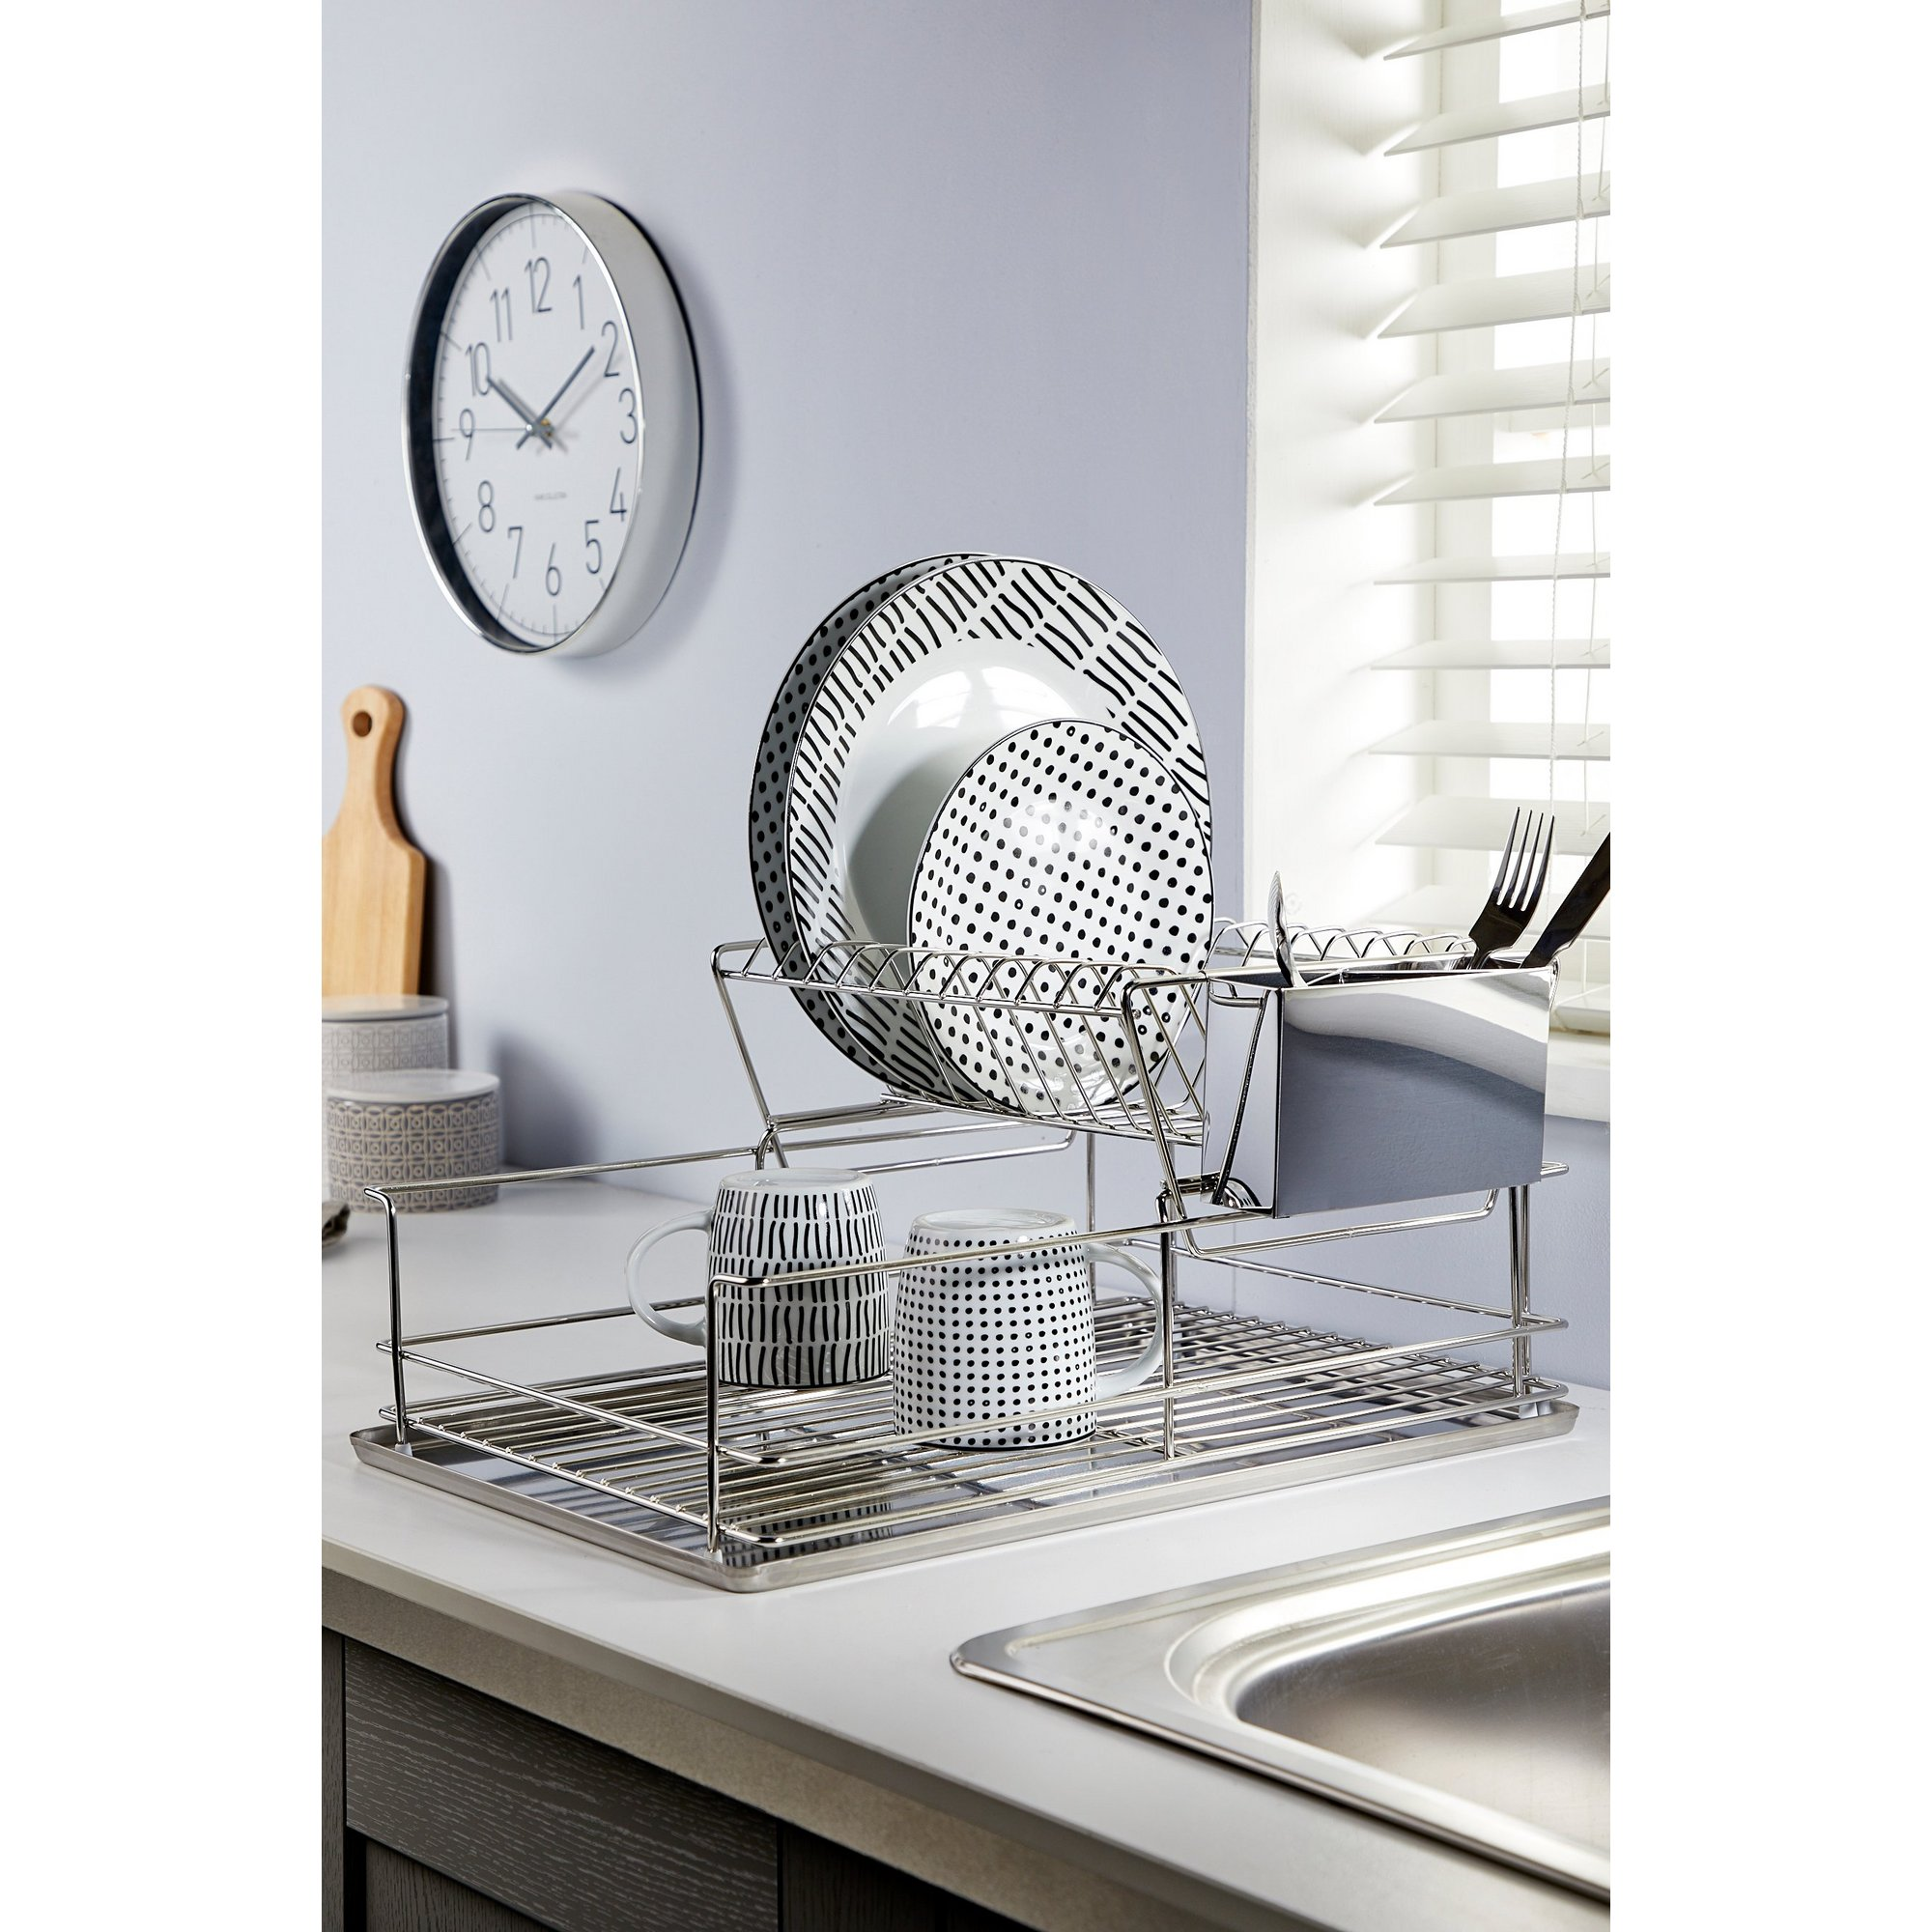 Image of 2-Tier Stainless Steel Dish Drainer